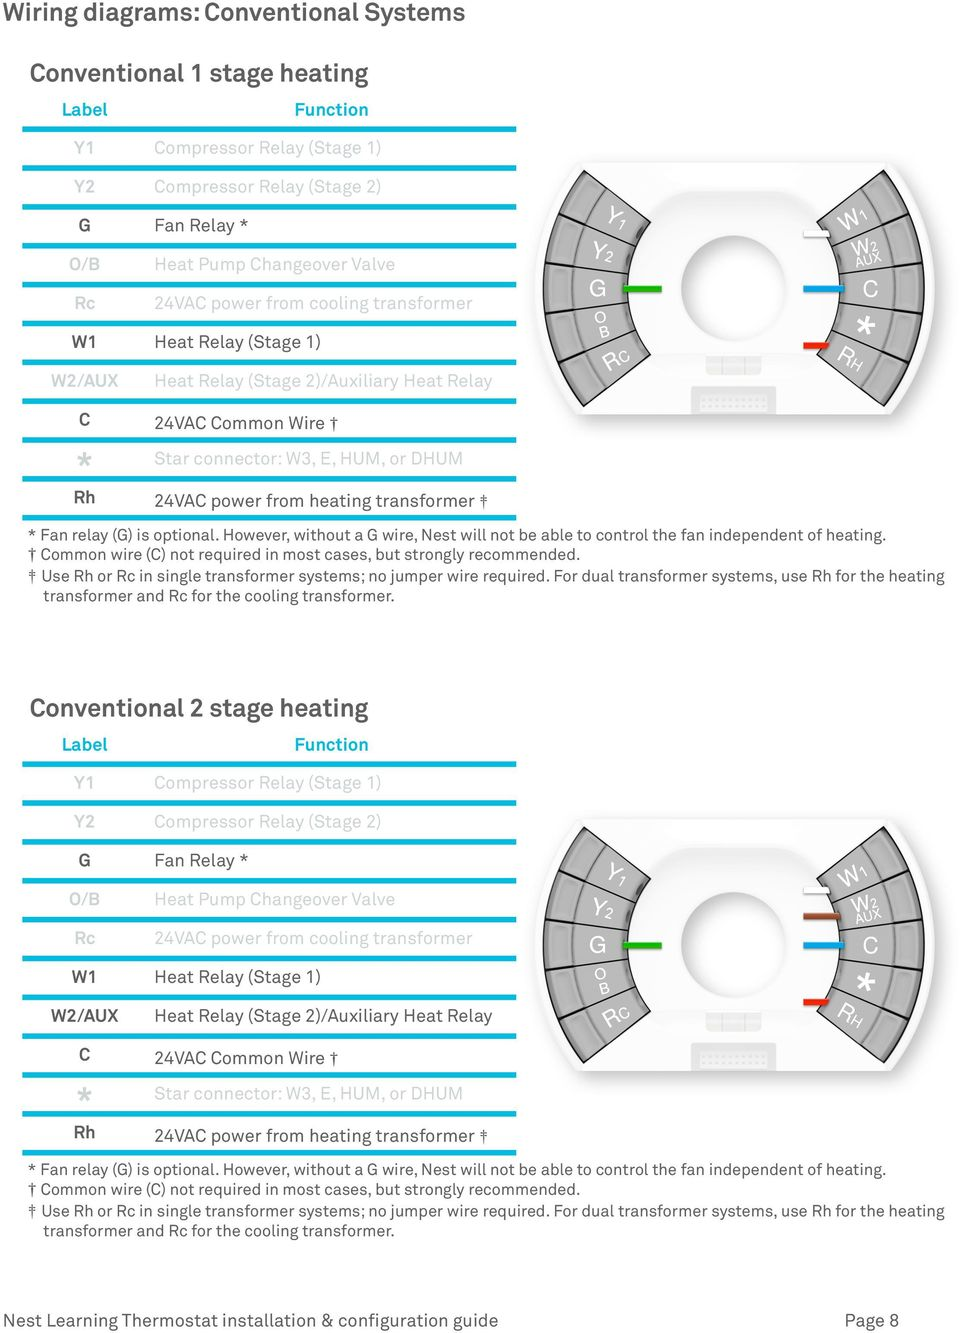 nest learning thermostat pro installation \u0026 configuration guide pdf Heart Sounds S1 and S2 nest learning thermostat installation \u0026 configuration guide page 8 transformer * fan relay (g) is optional however, without a g wire